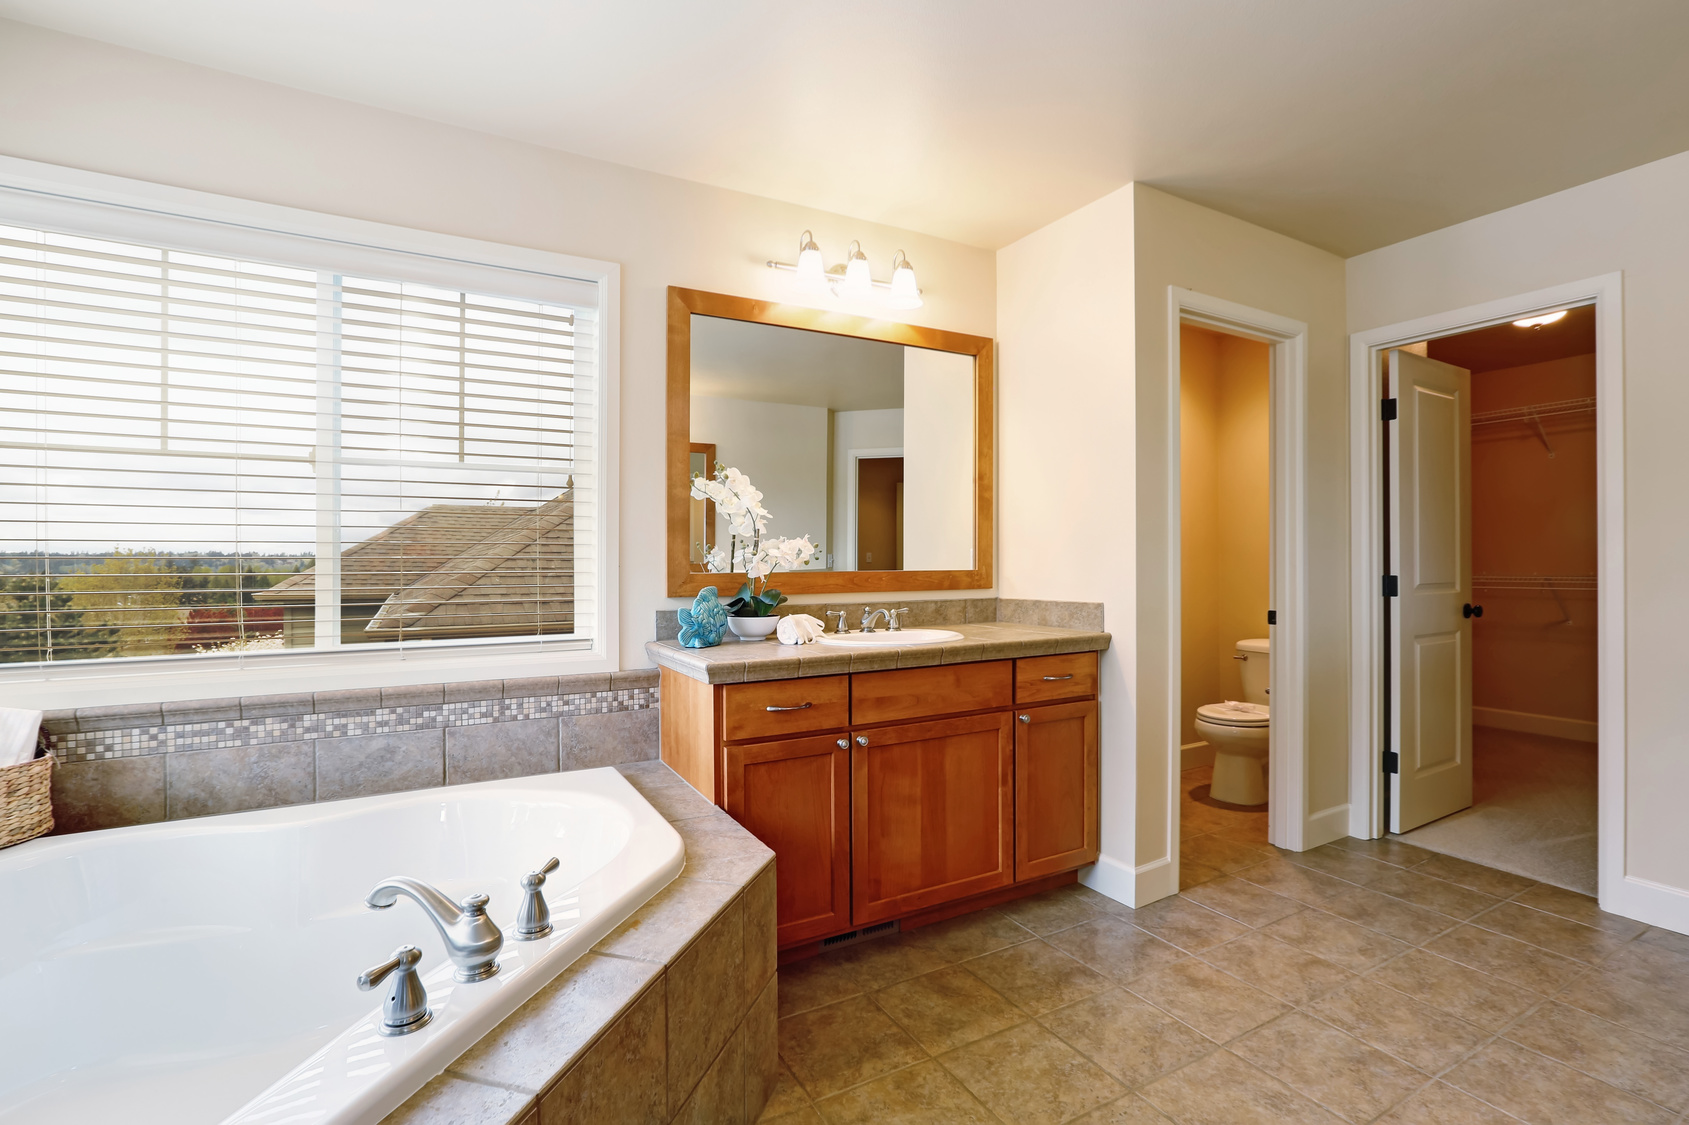 Gorgeous spa like bathroom with two vanity cabinets.